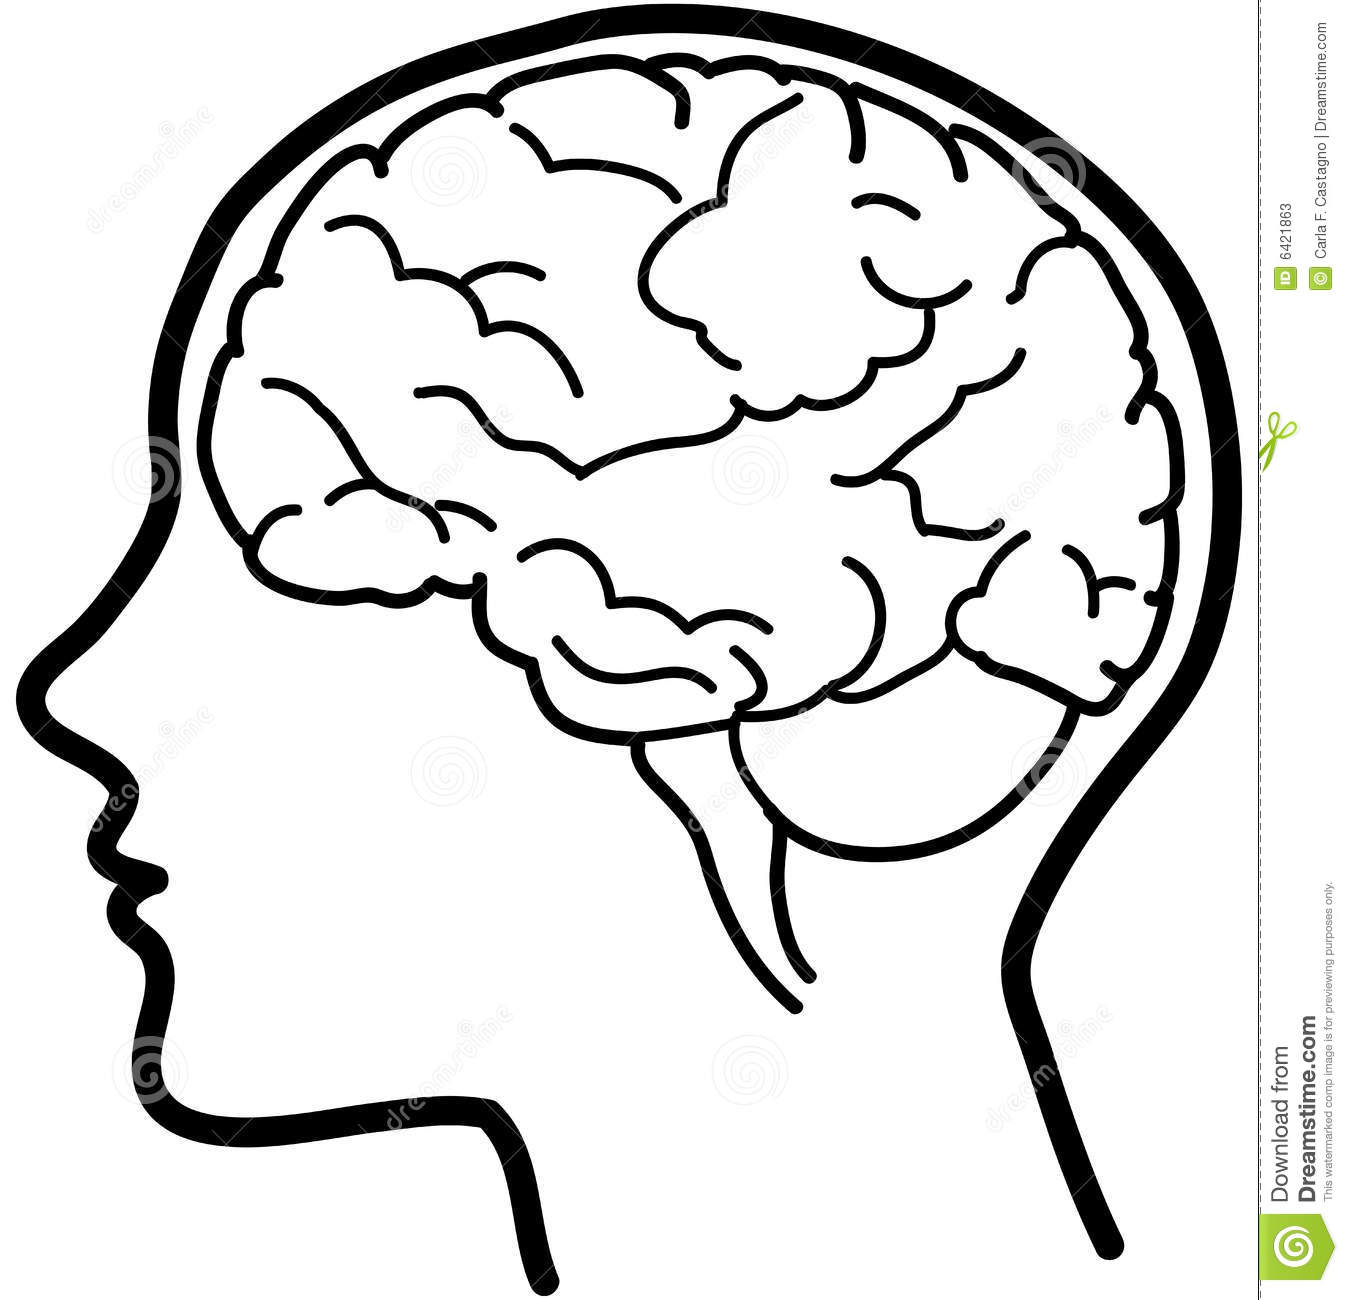 brain outline drawing at getdrawings com free for personal use rh getdrawings com clip art brain cartoon clip art brainstorming